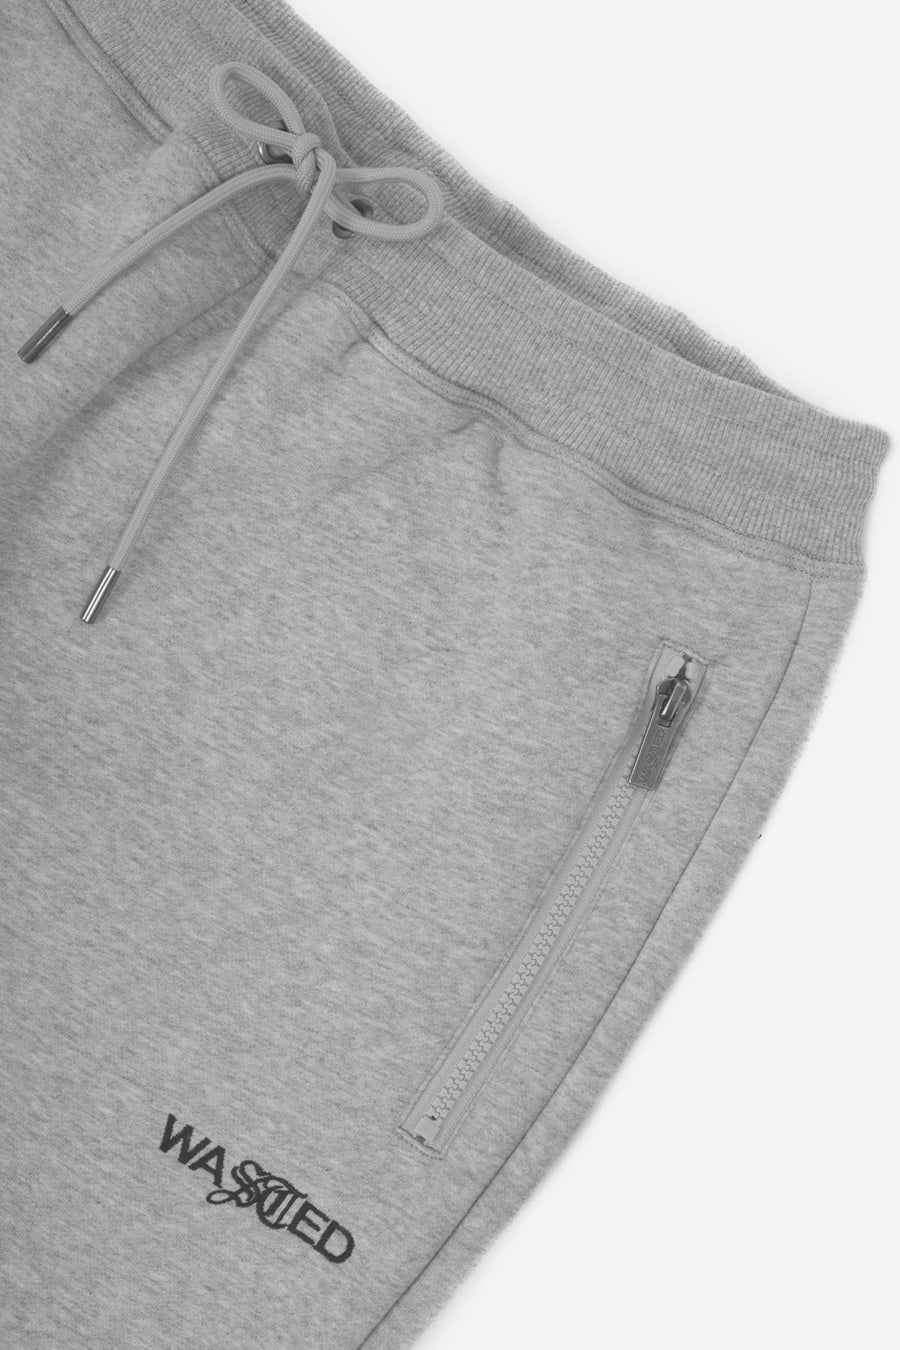 Jogging Essentiel Gris Chiné SS21 - WASTED PARIS